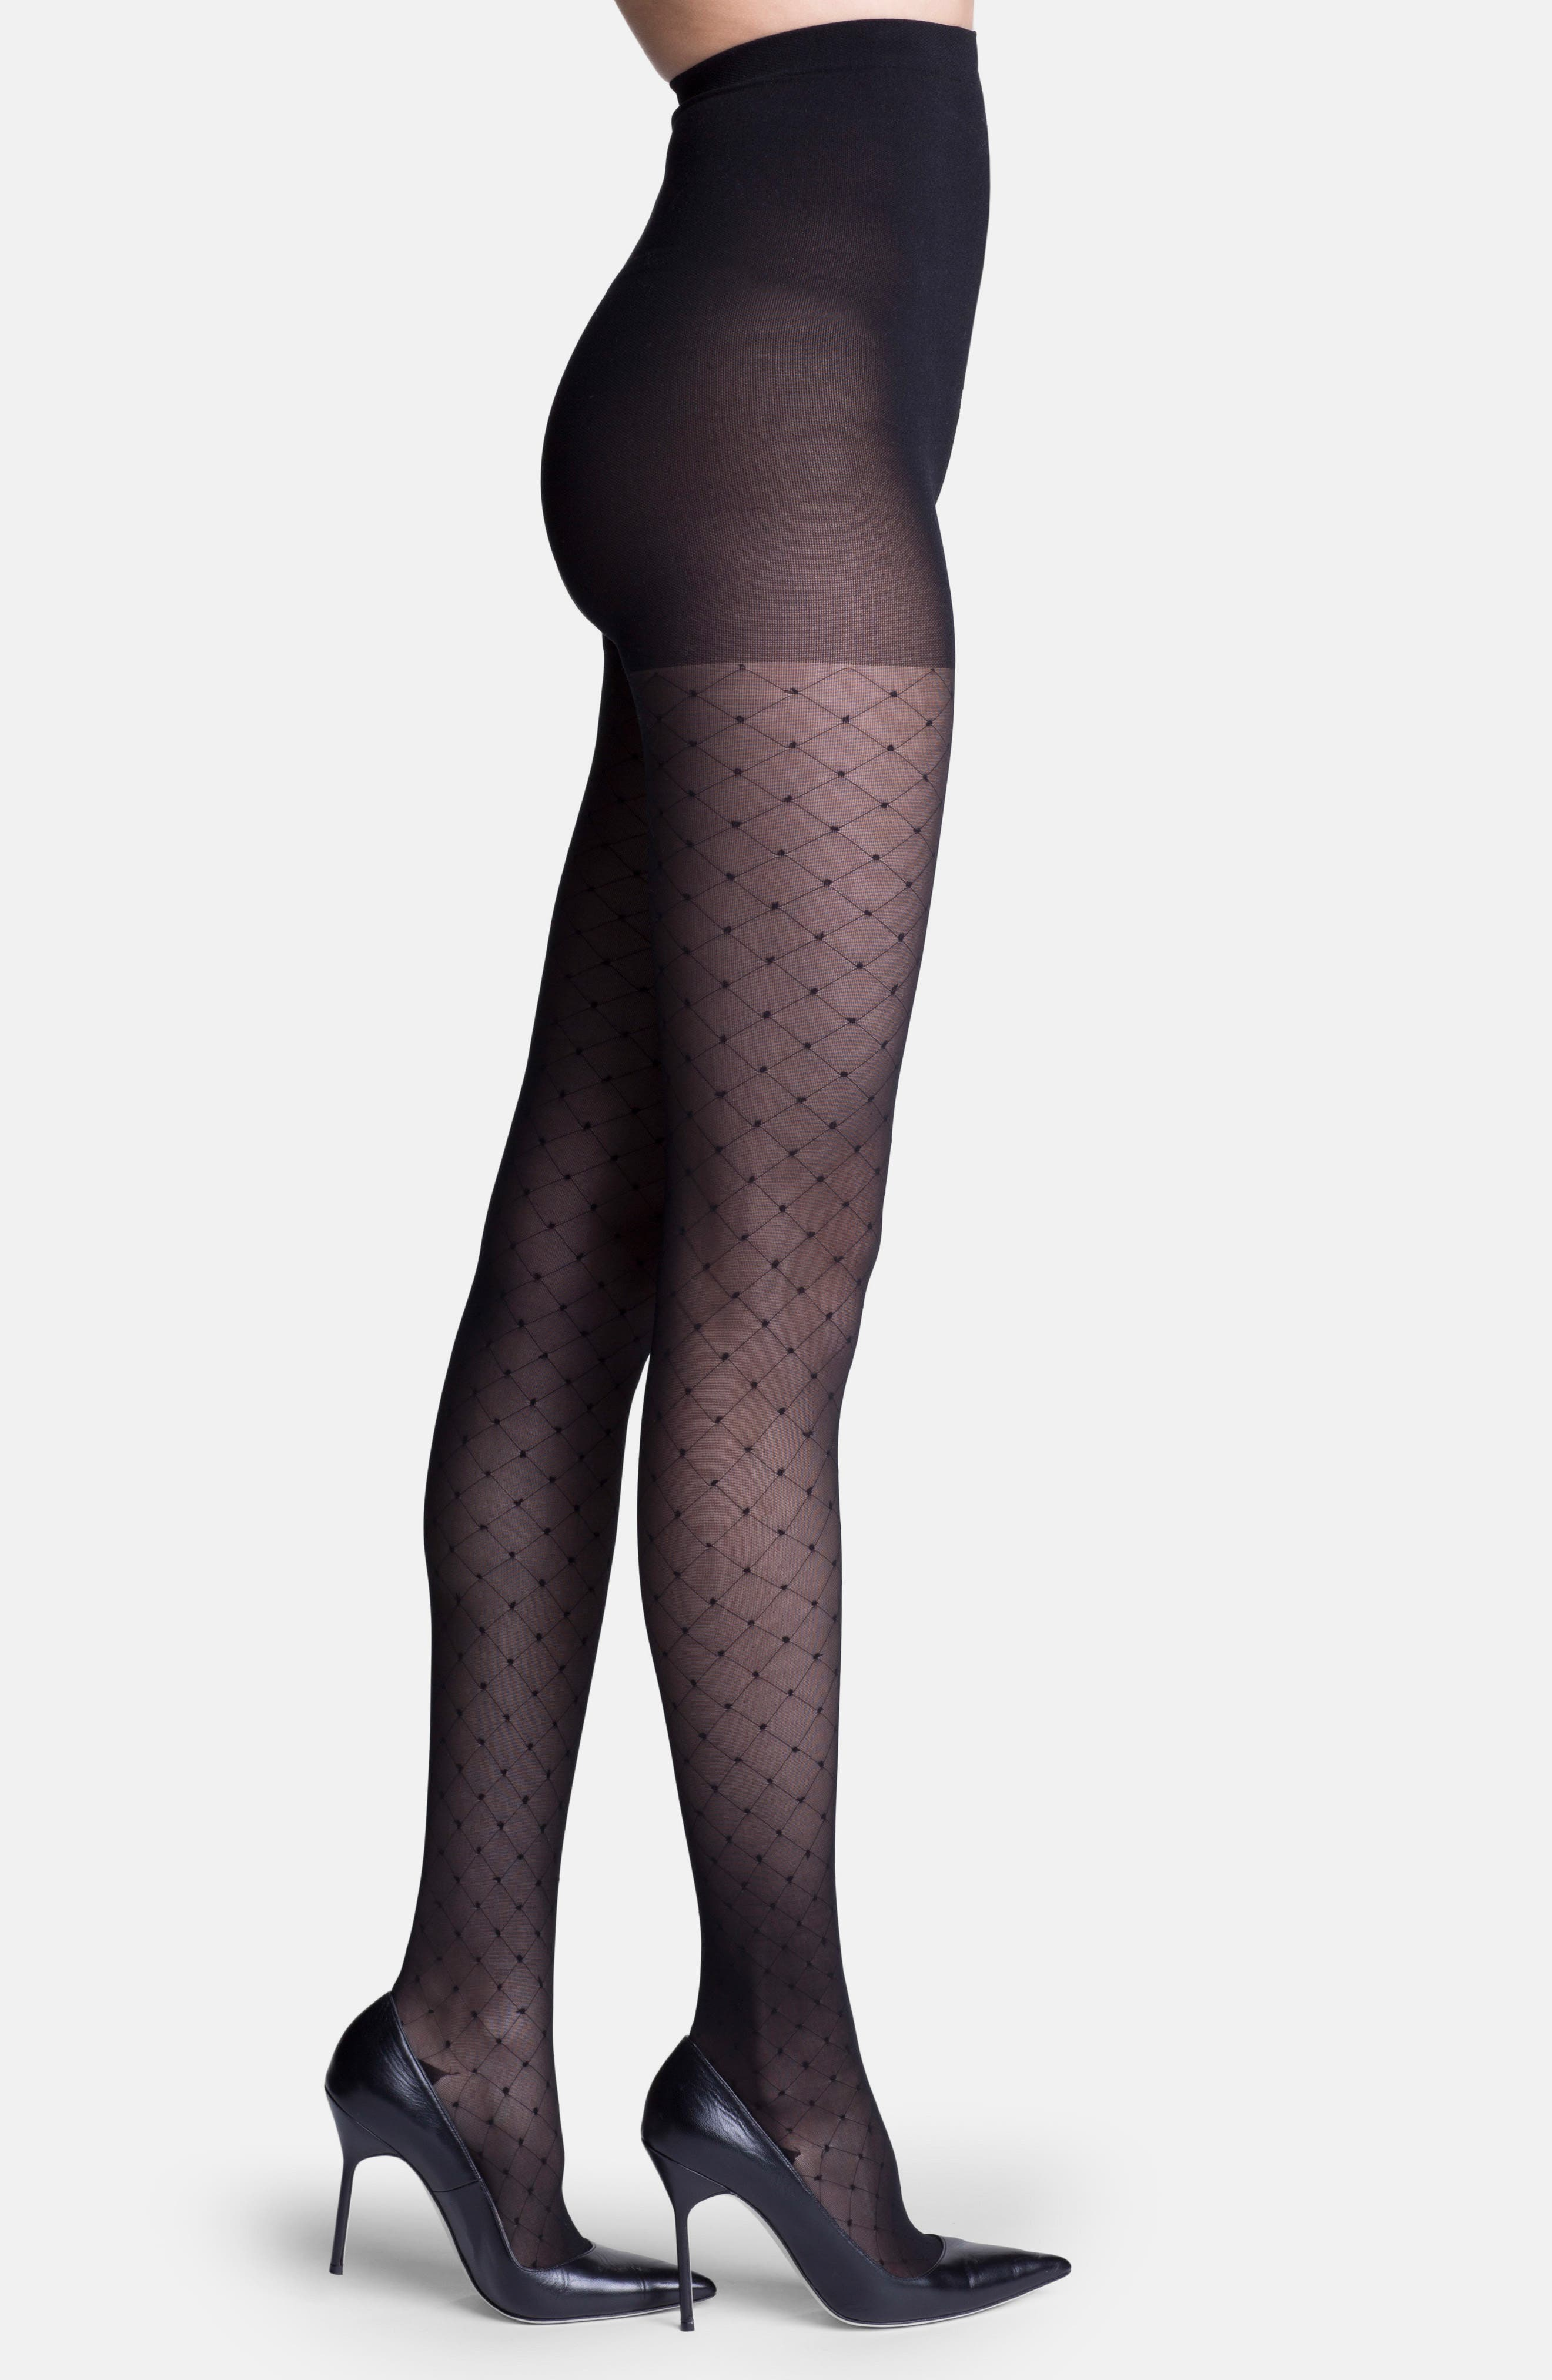 'Starlet' Diamond Pattern Compression Pantyhose,                             Alternate thumbnail 4, color,                             BLACK